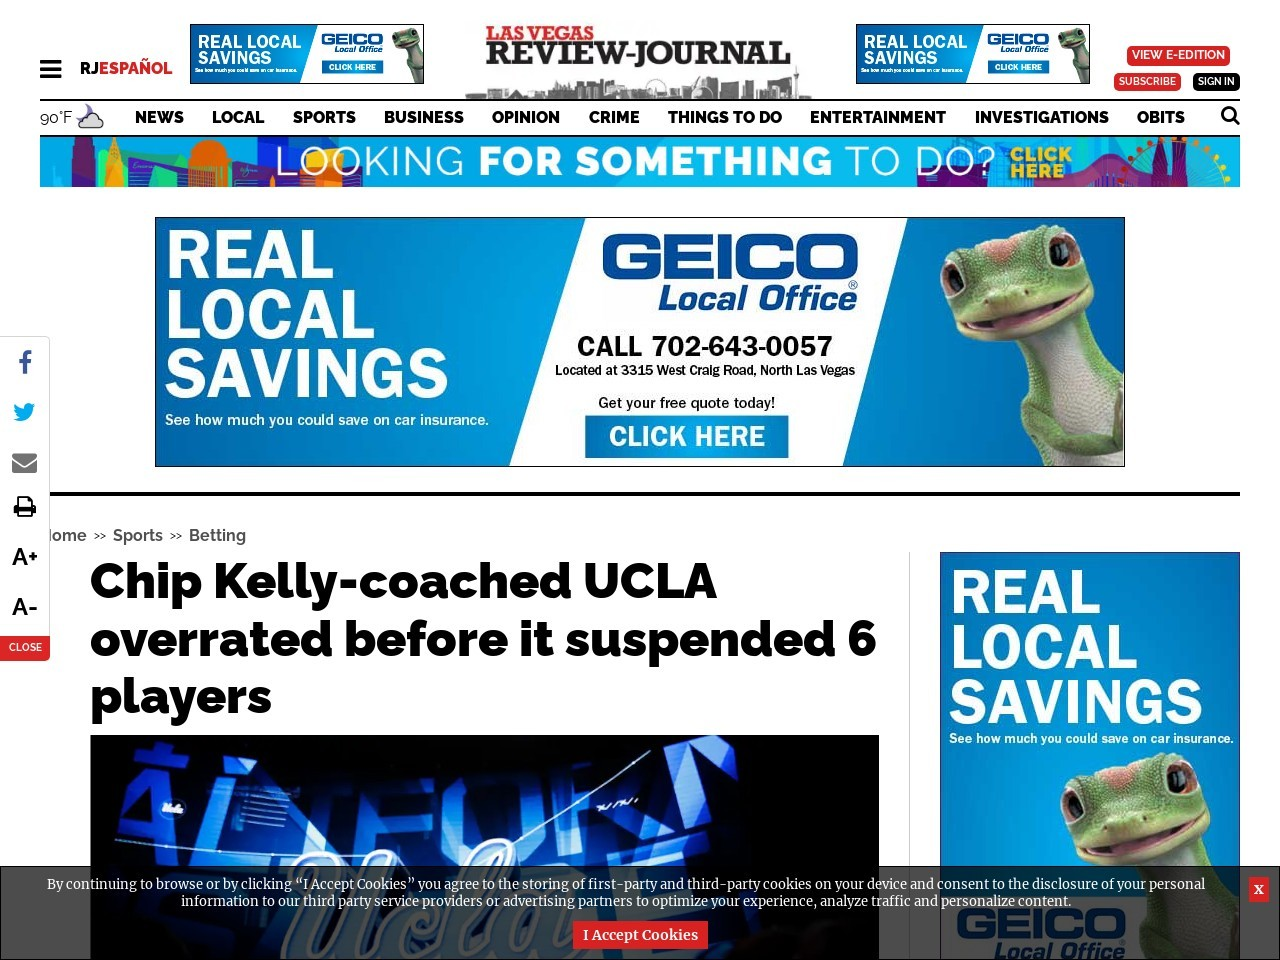 Chip Kelly-coached UCLA overrated before it suspended 6 players